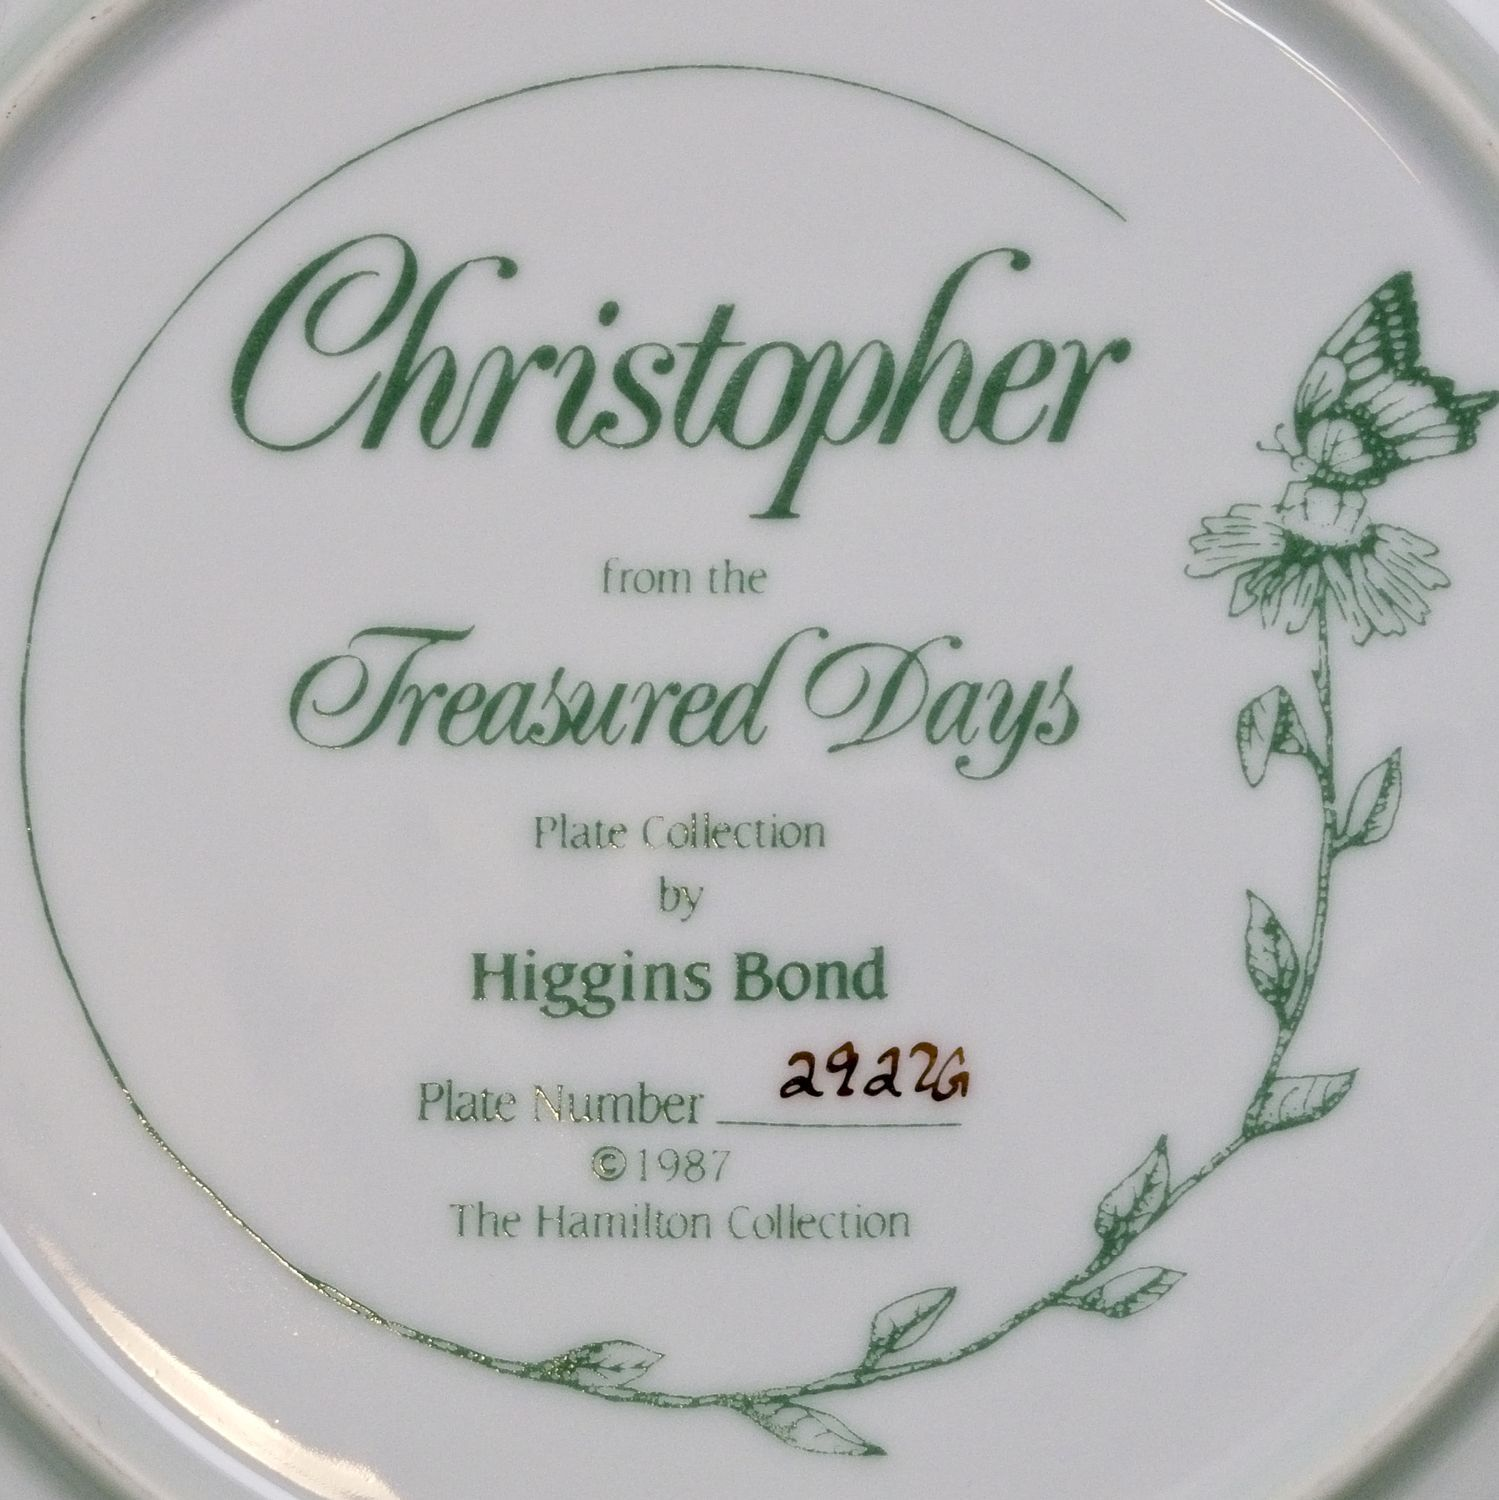 1987 Hamilton Collection Collector Plate, Christopher, Treasured Days, Higgins Bond